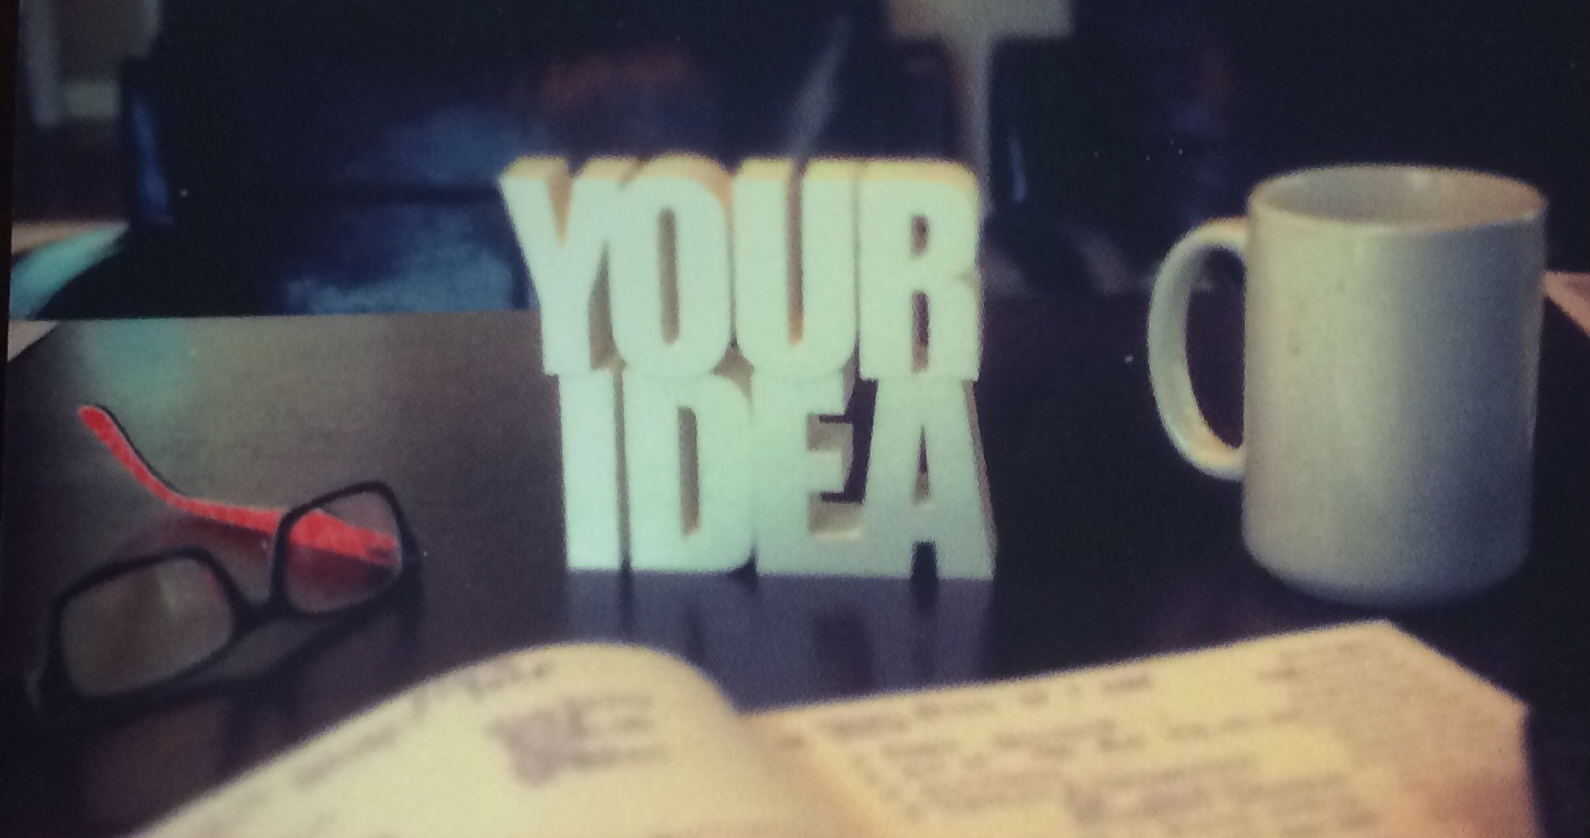 your idea blog photo.JPG